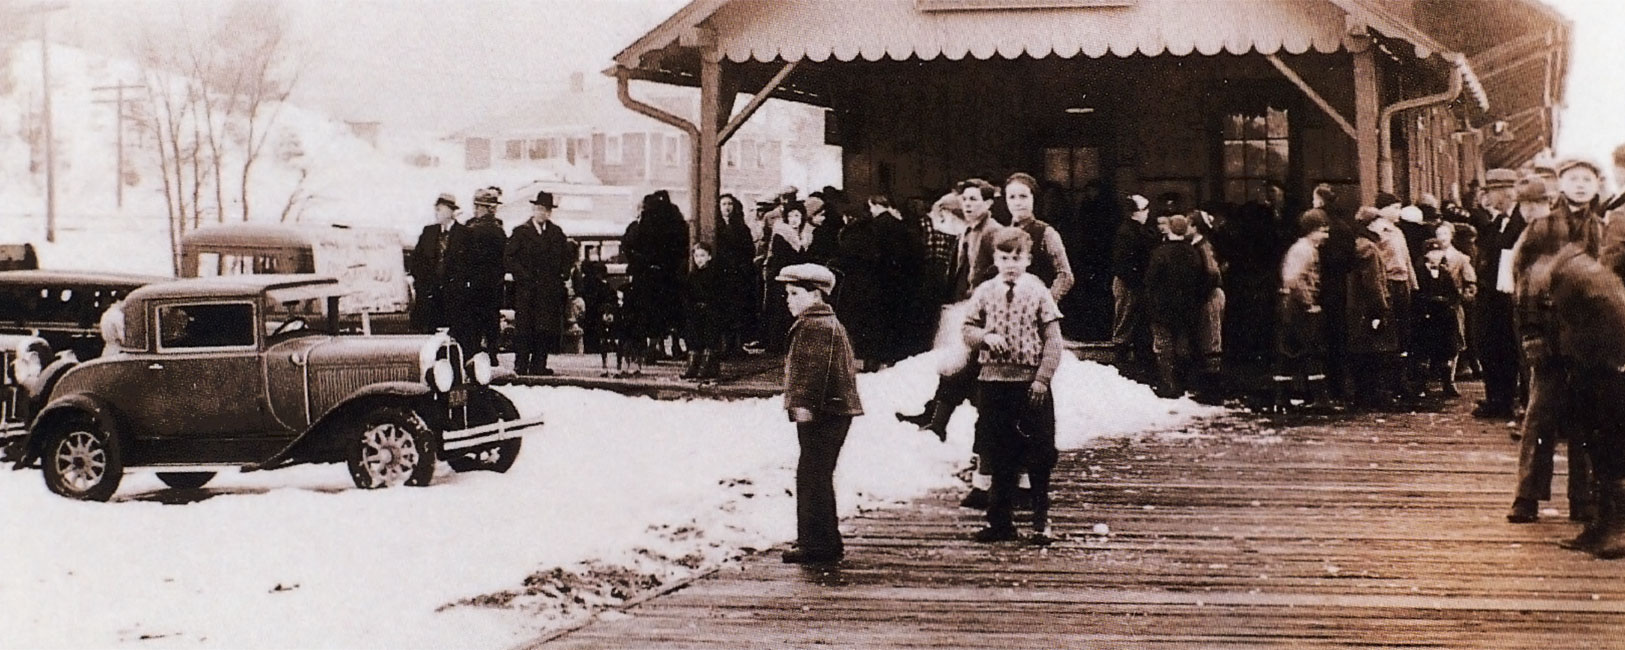 Historical photo of kid playing in snow in Warren County NY